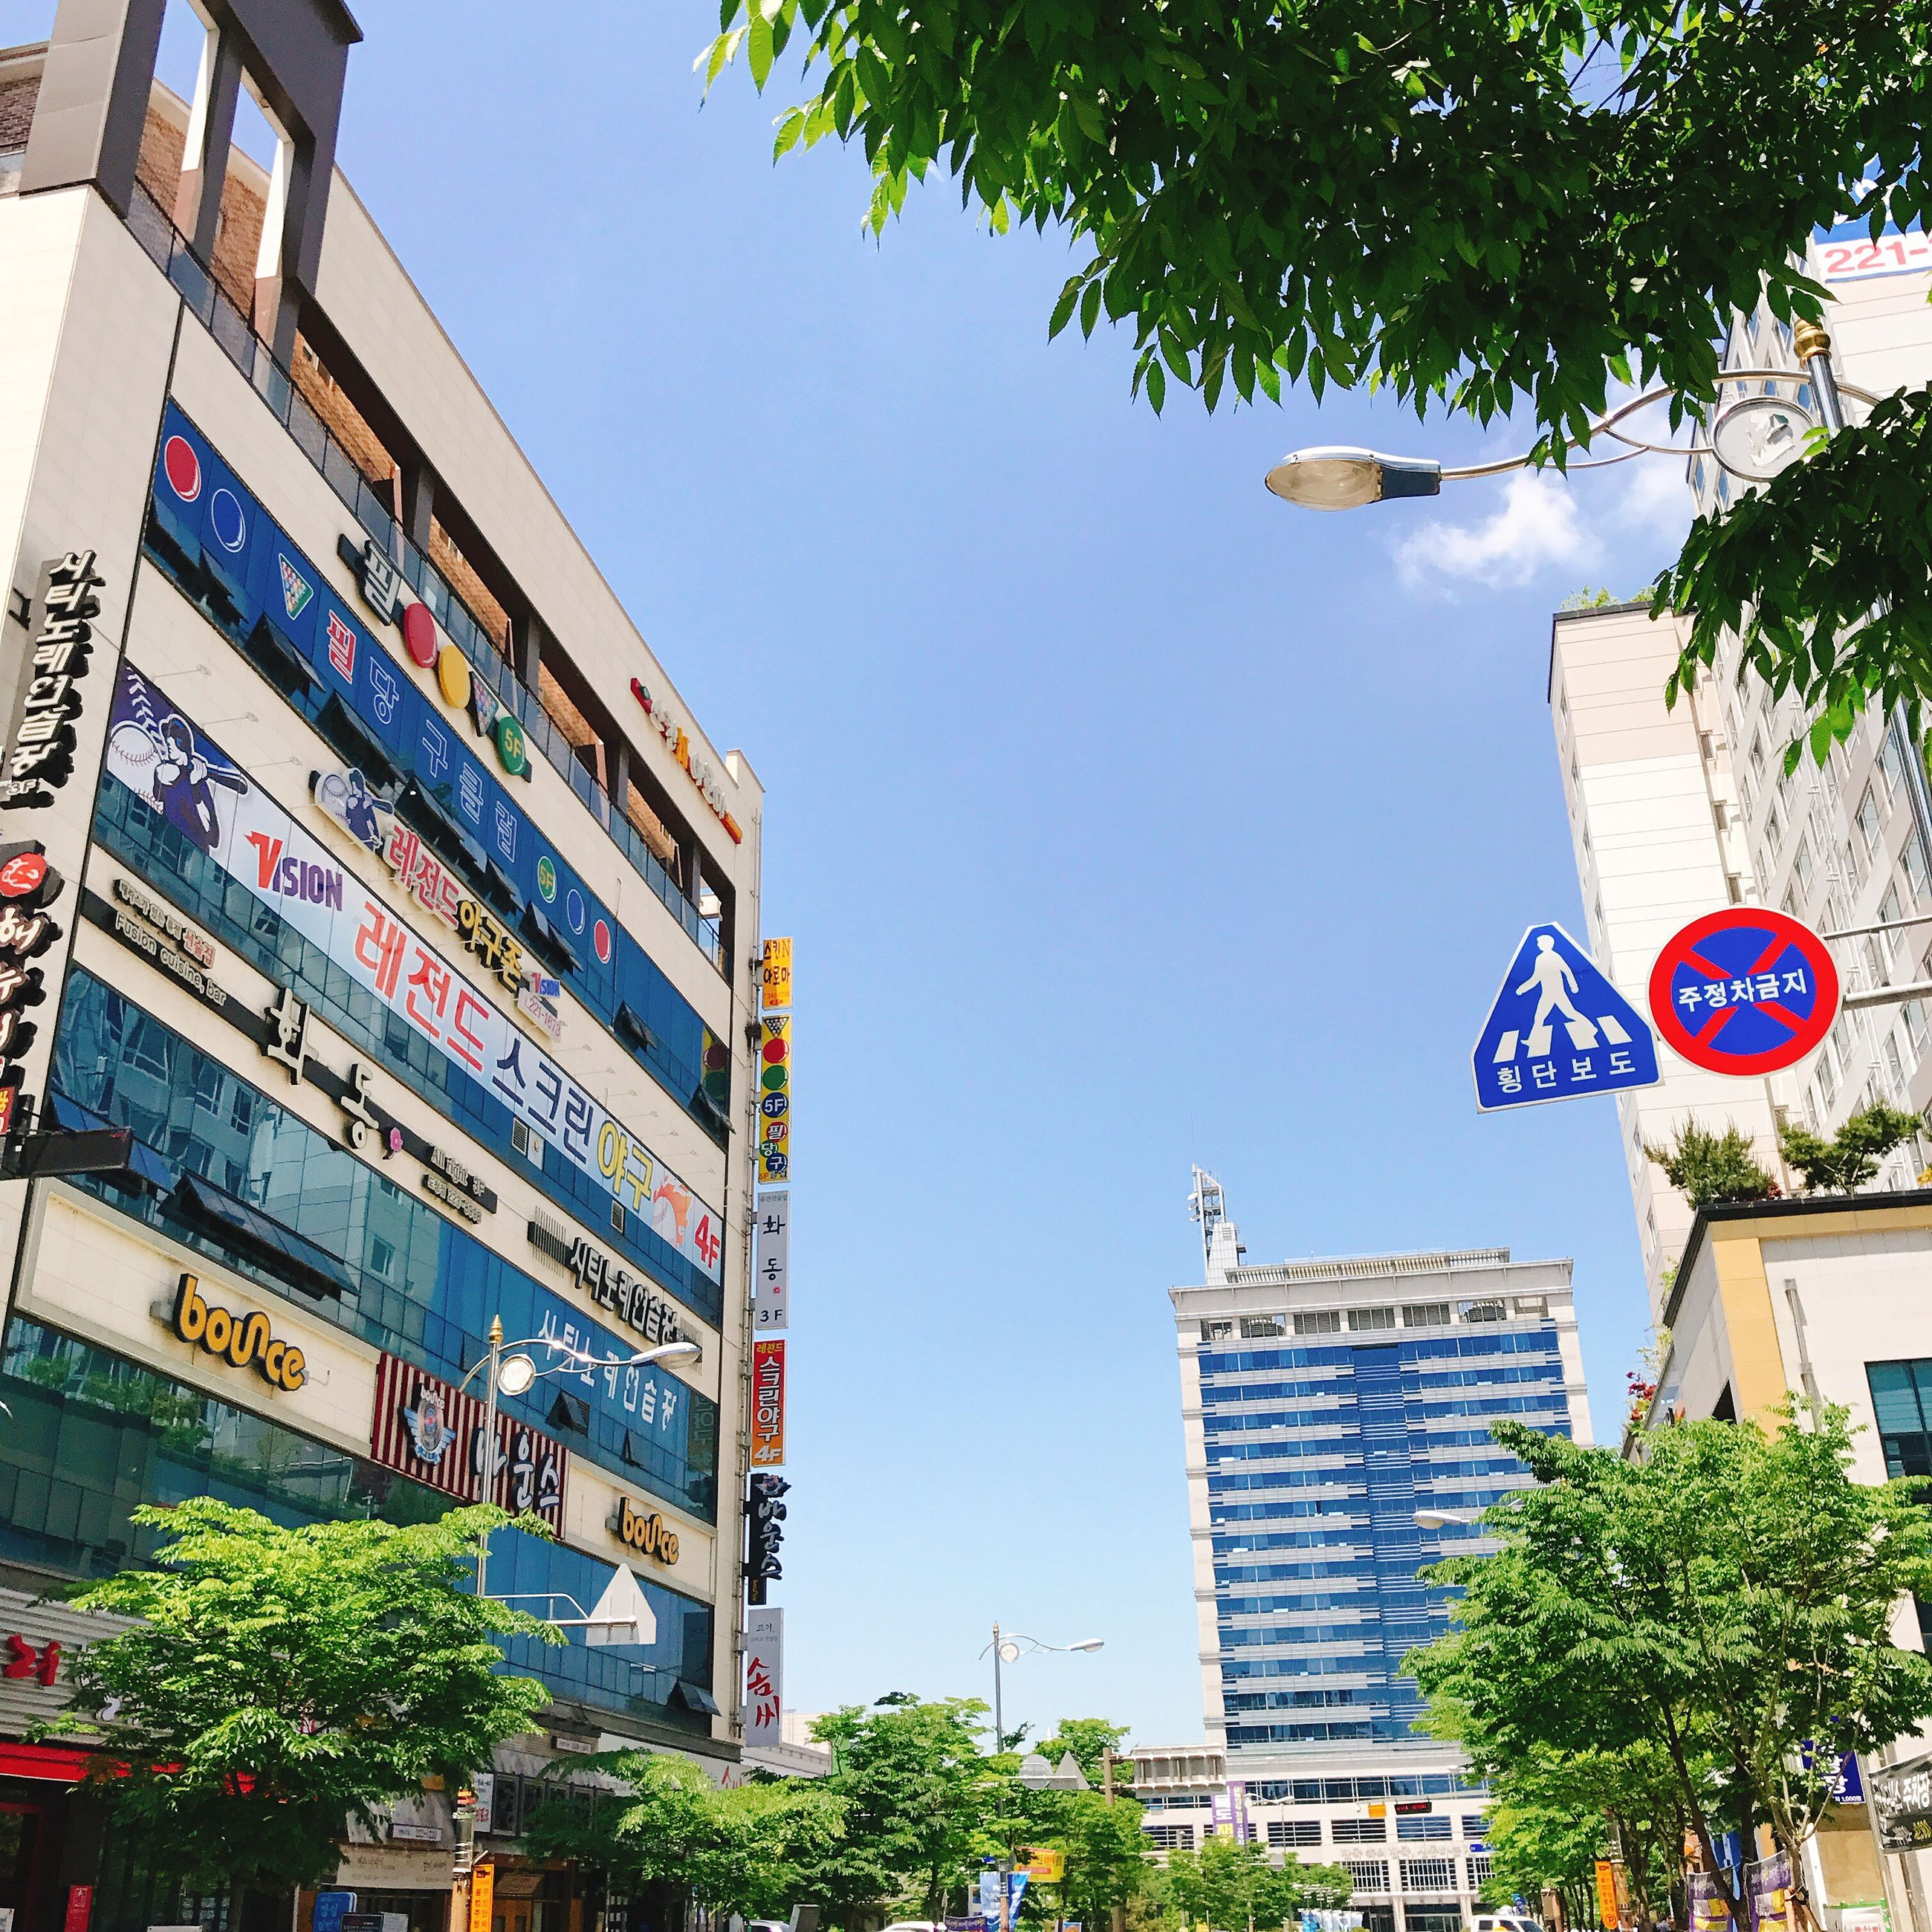 building exterior, architecture, tree, built structure, low angle view, text, outdoors, city, clear sky, day, communication, sky, flag, no people, road sign